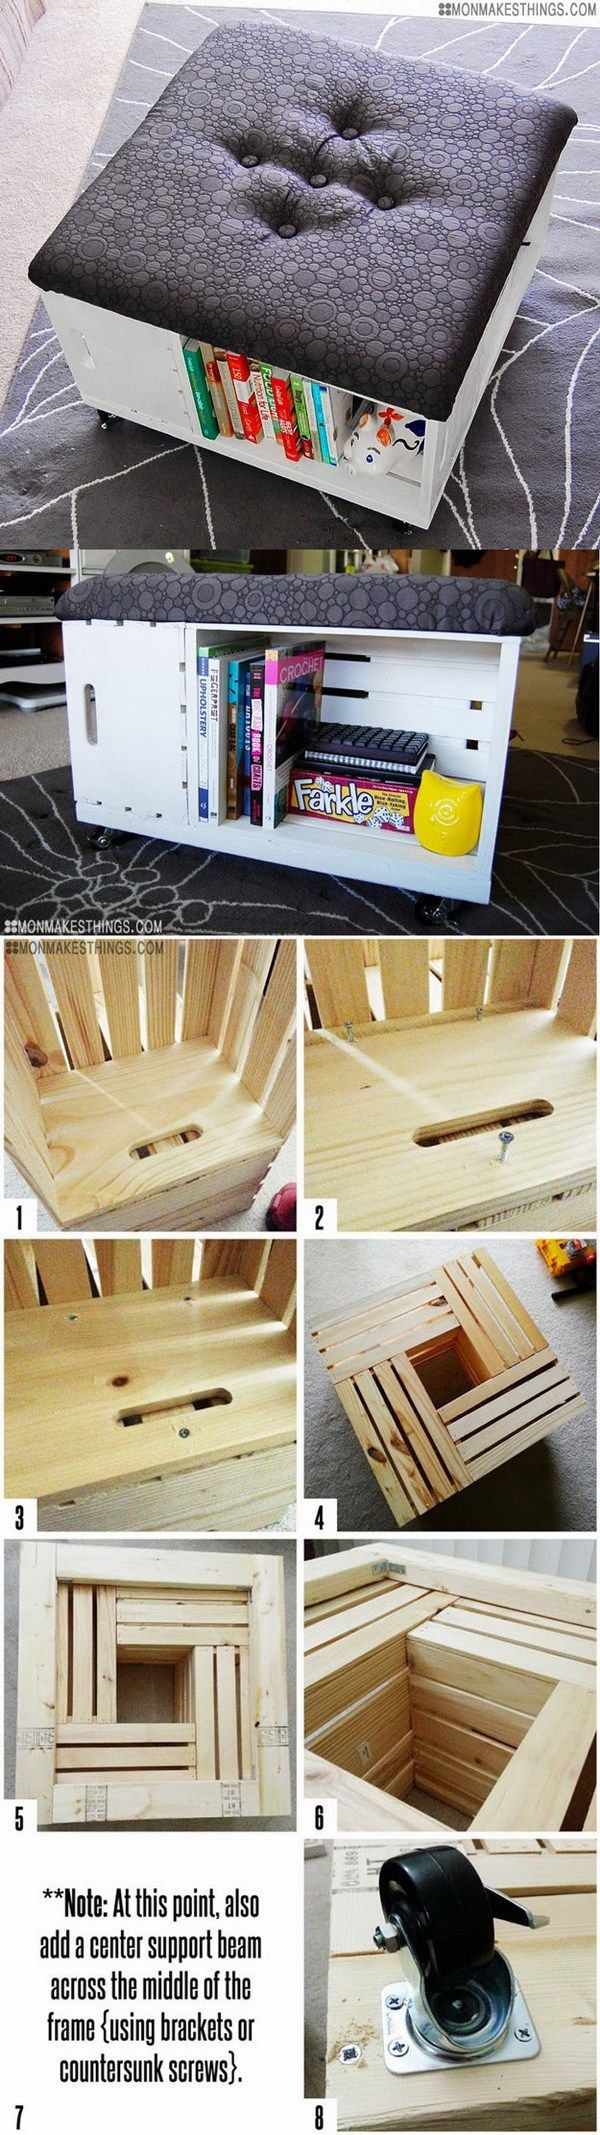 DIY Ideas Of Reusing Old Furniture 14